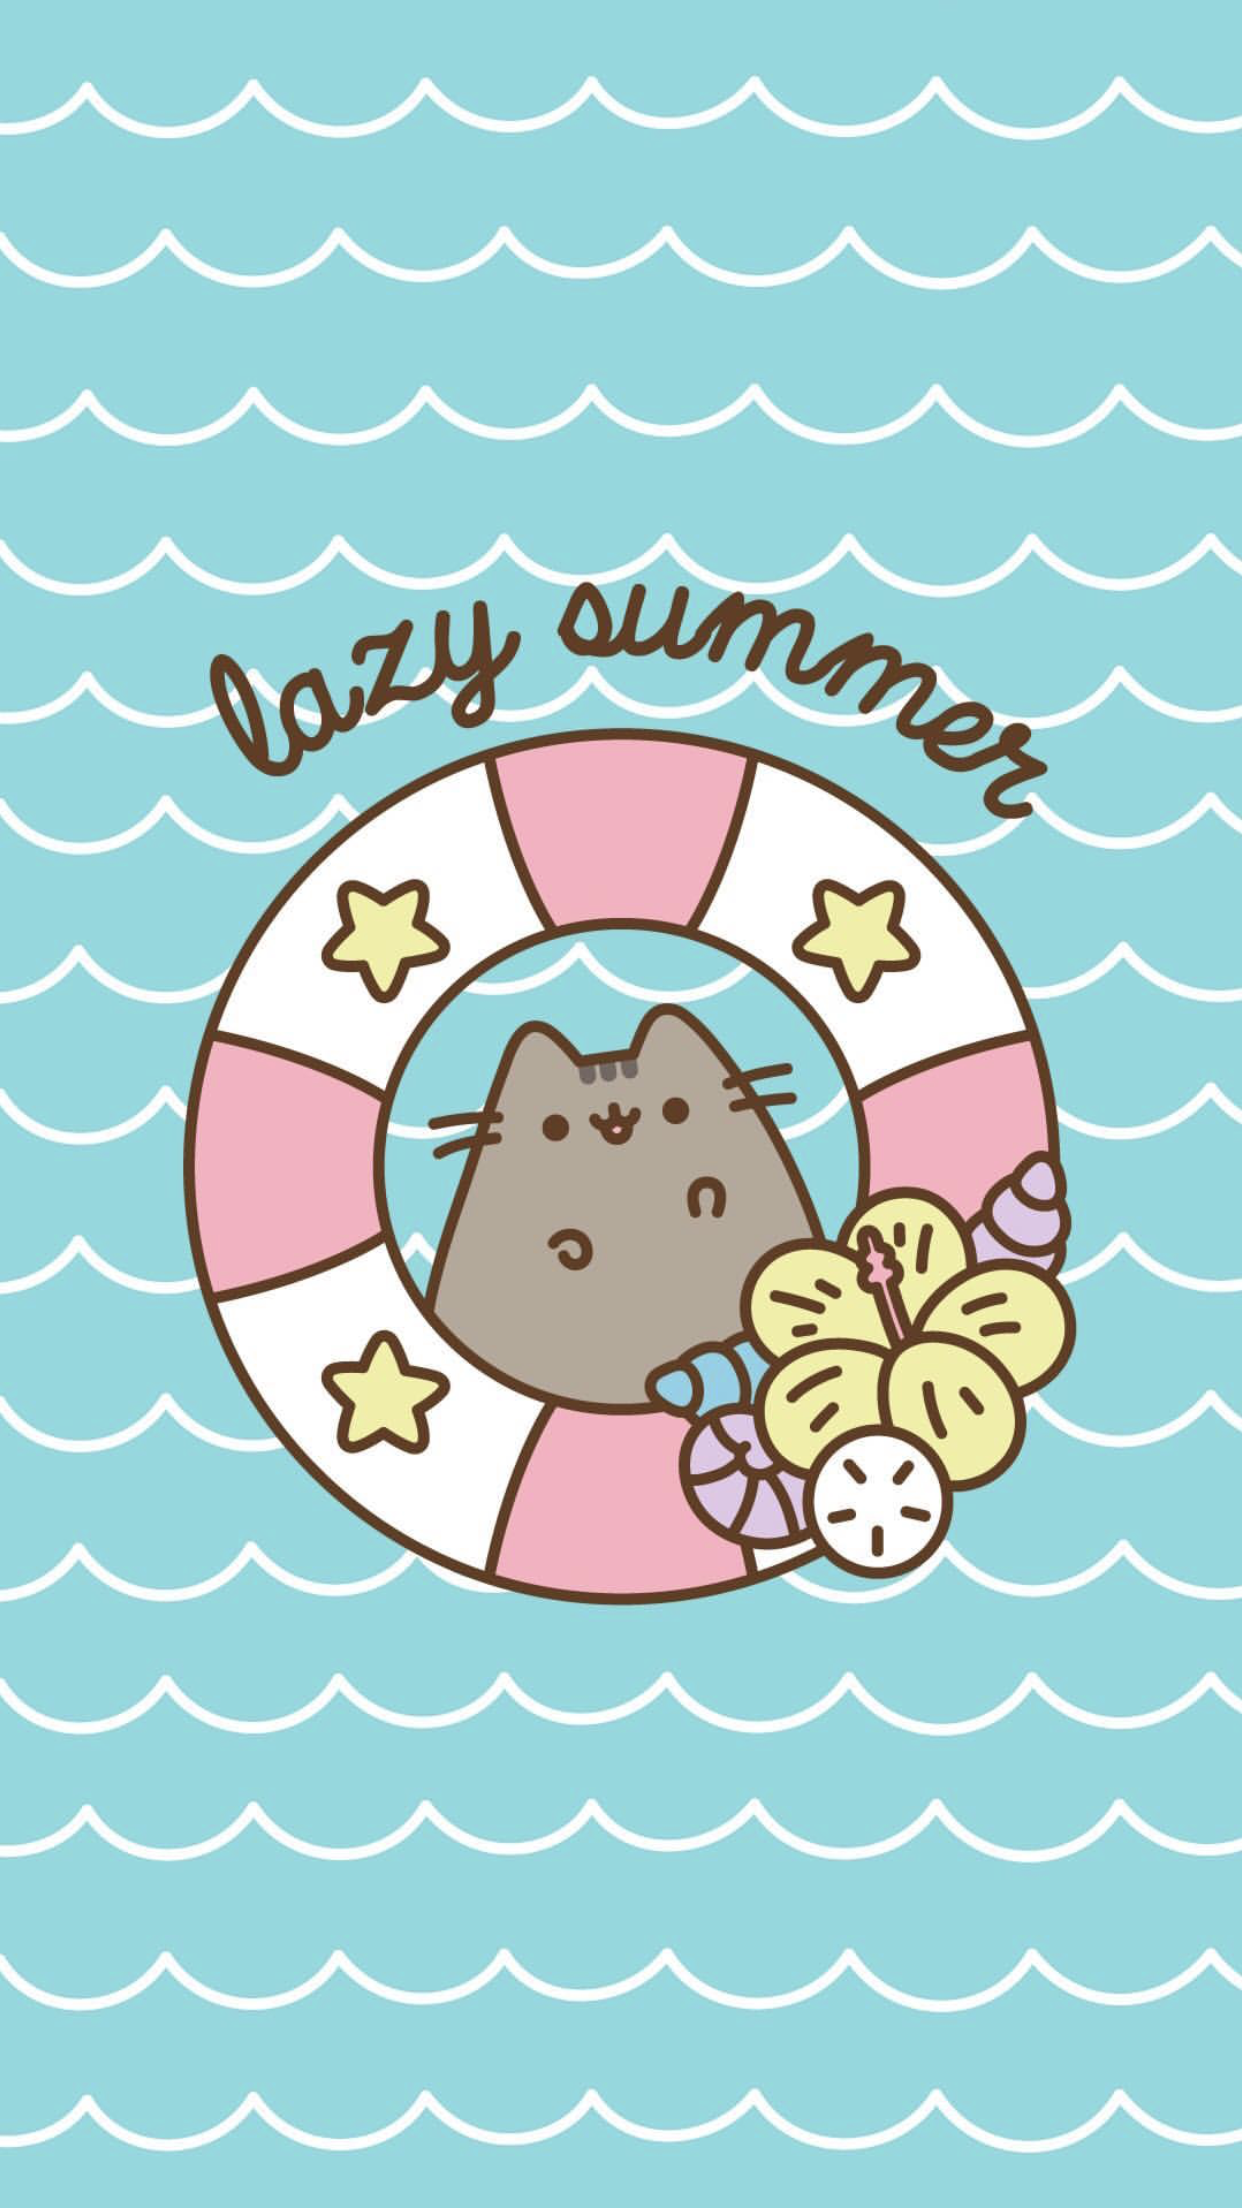 Pusheen Iphone Wallpaper Pusheen Cute Pusheen Cat Cat Wallpaper